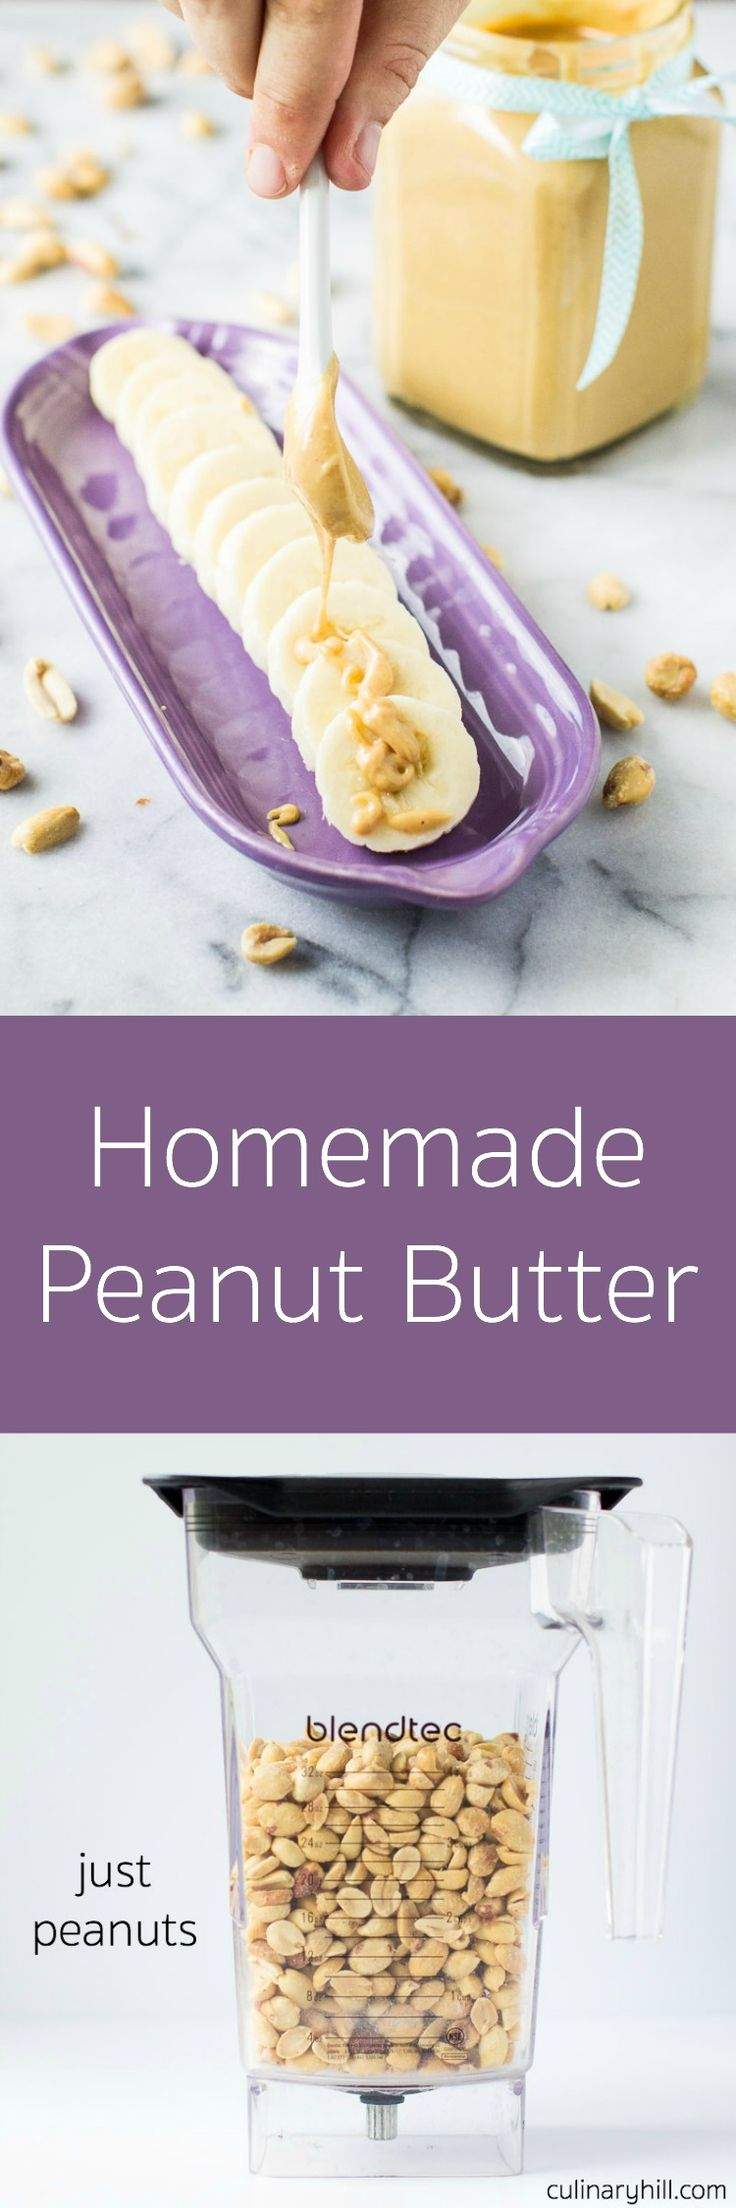 Just Peanuts. This smooth and creamy Homemade Peanut Butter has no added sugar, salt, or oil. It's just peanuts, and it's world apart from store-bought.